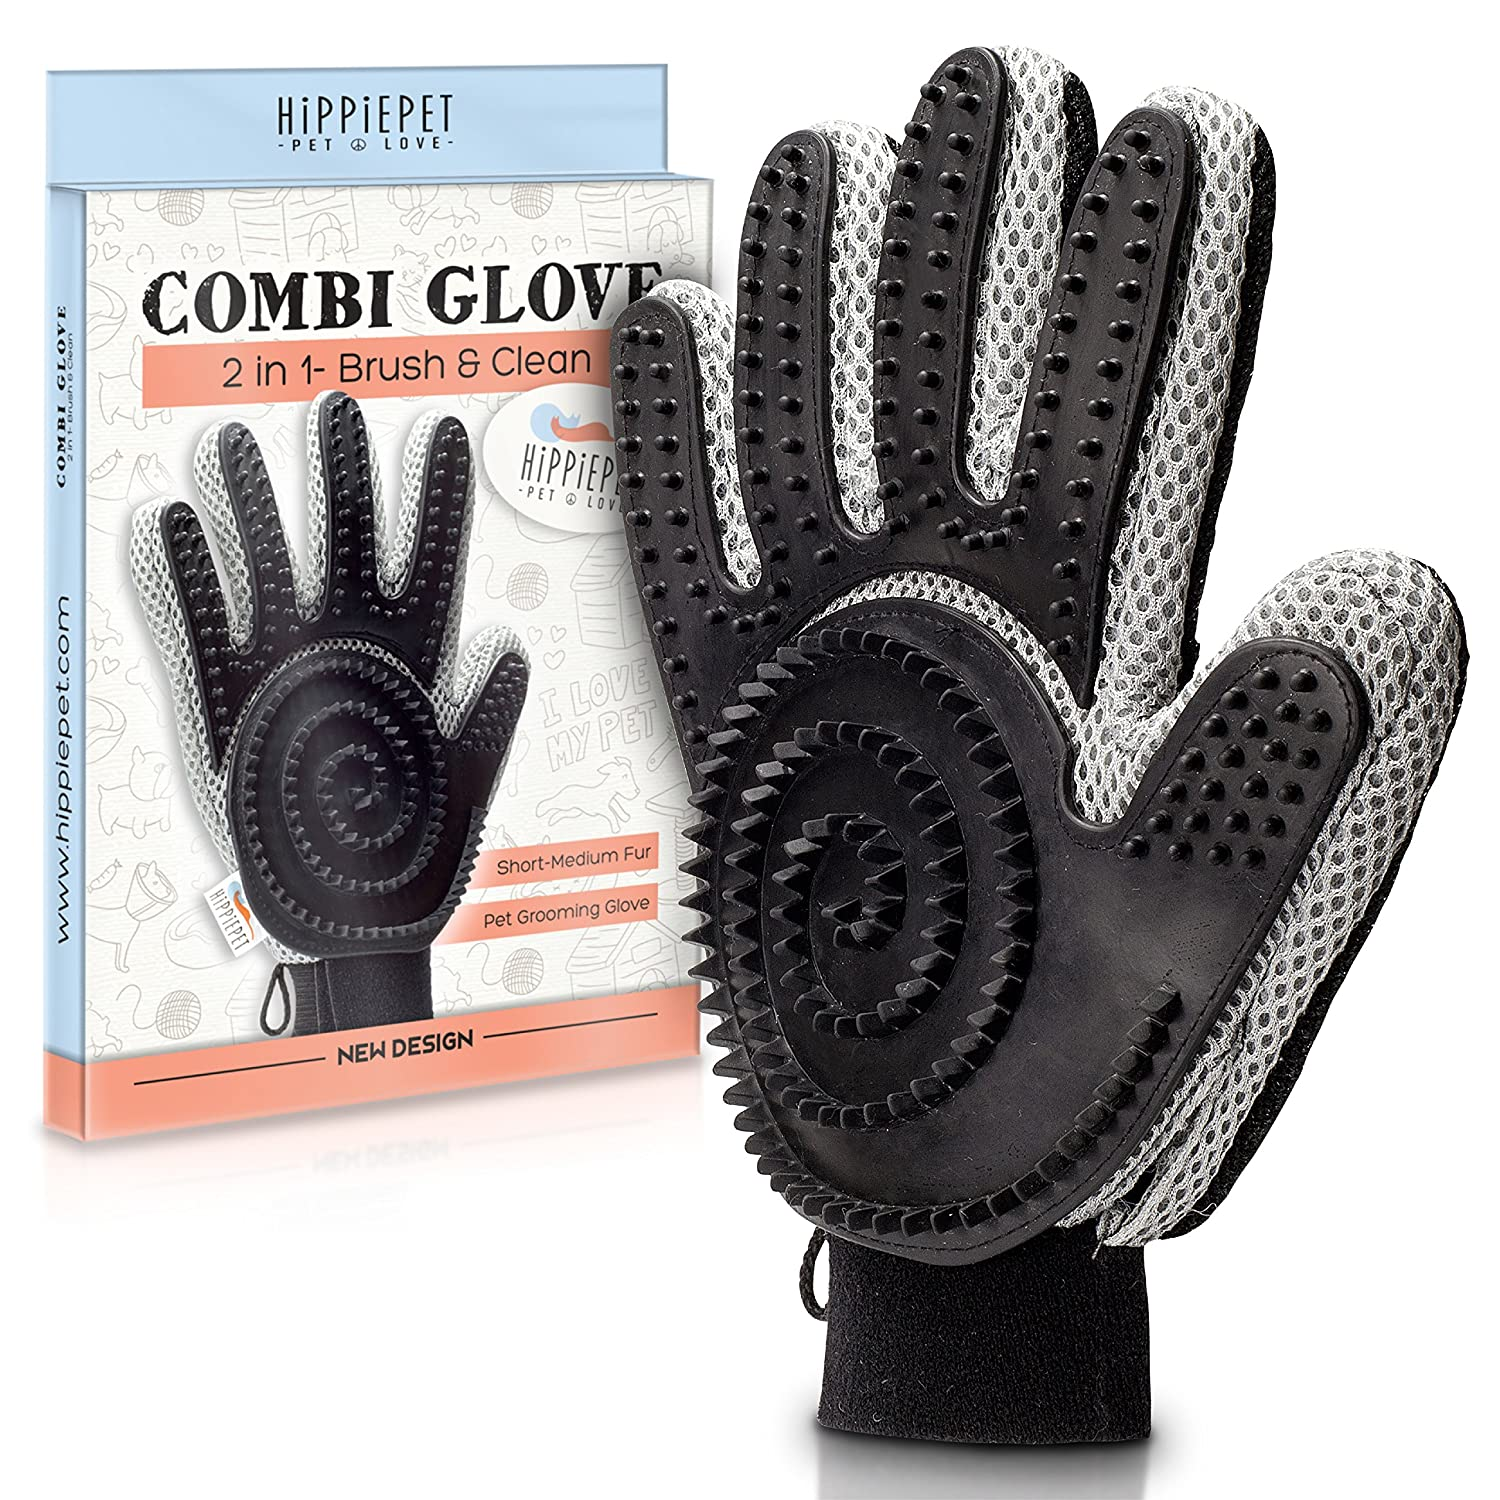 The Combi Glove - Pet Grooming Glove Brush with Dog and Cat Hair Remover from Furniture, Carpets, Clothes, and More for Easy Clean-Up - Double-Sided, De Shedding Silicone Massage Mitt by Hippiepet RONNE BRANDS